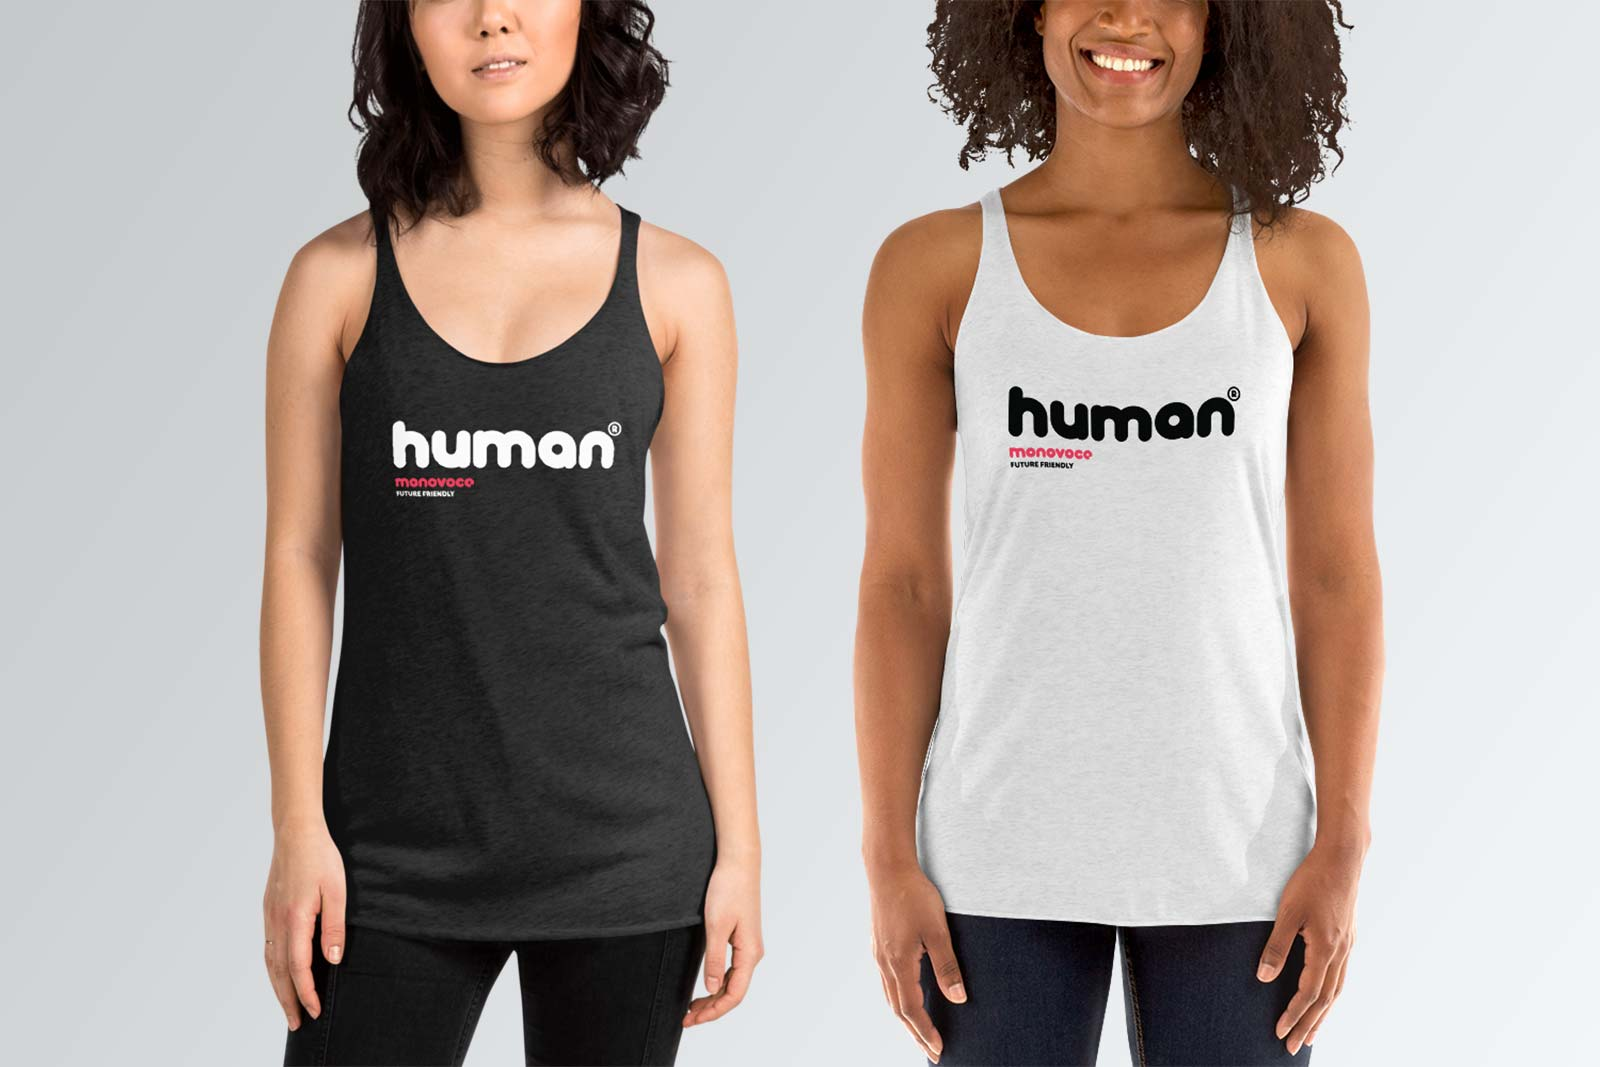 Human tank top for women i black and white